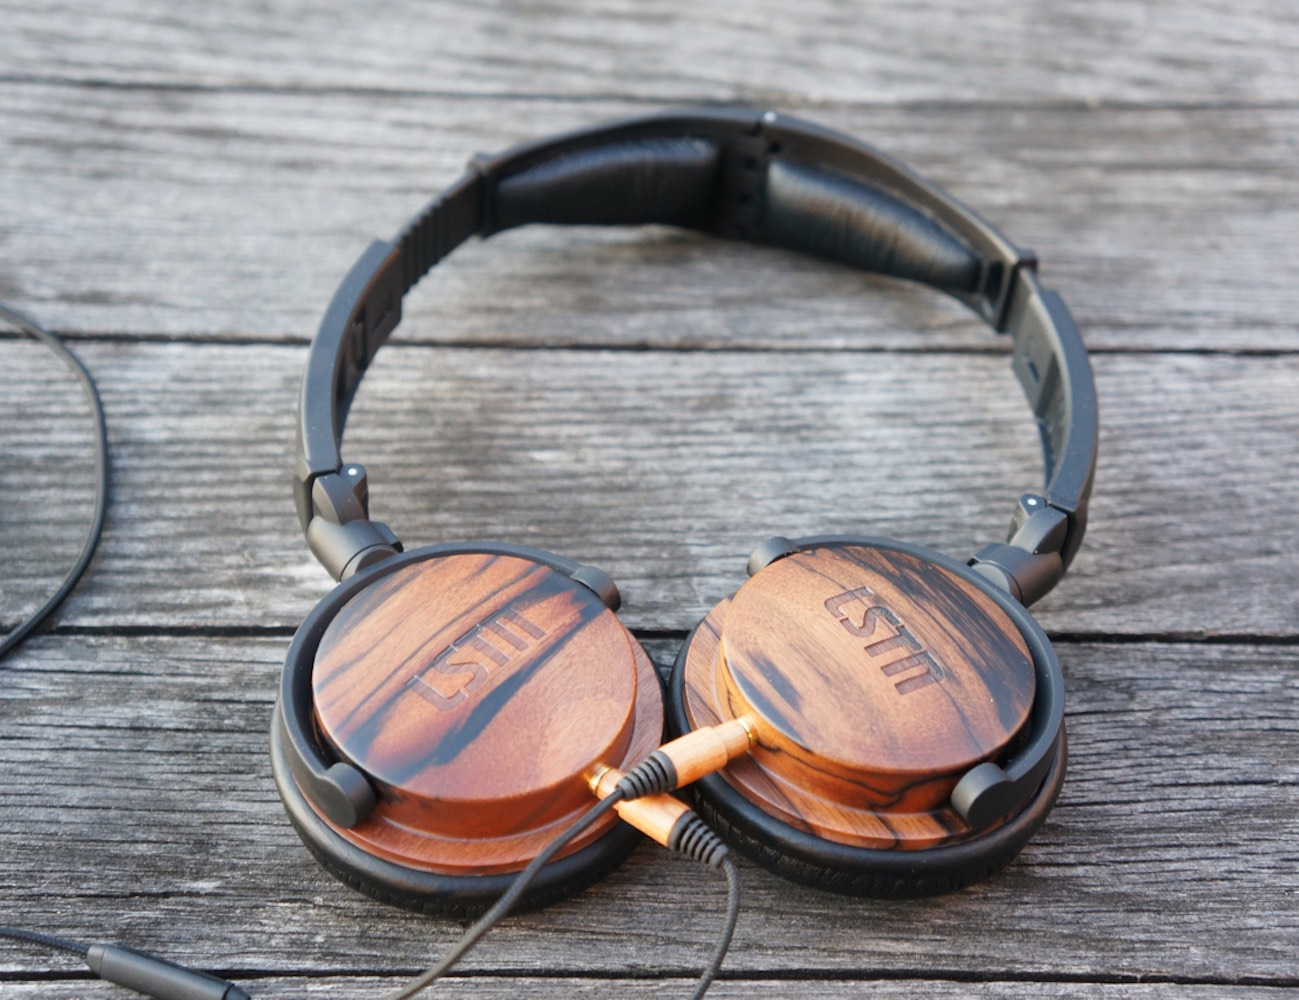 Ebony Wood Fillmores Headphones by LSTN